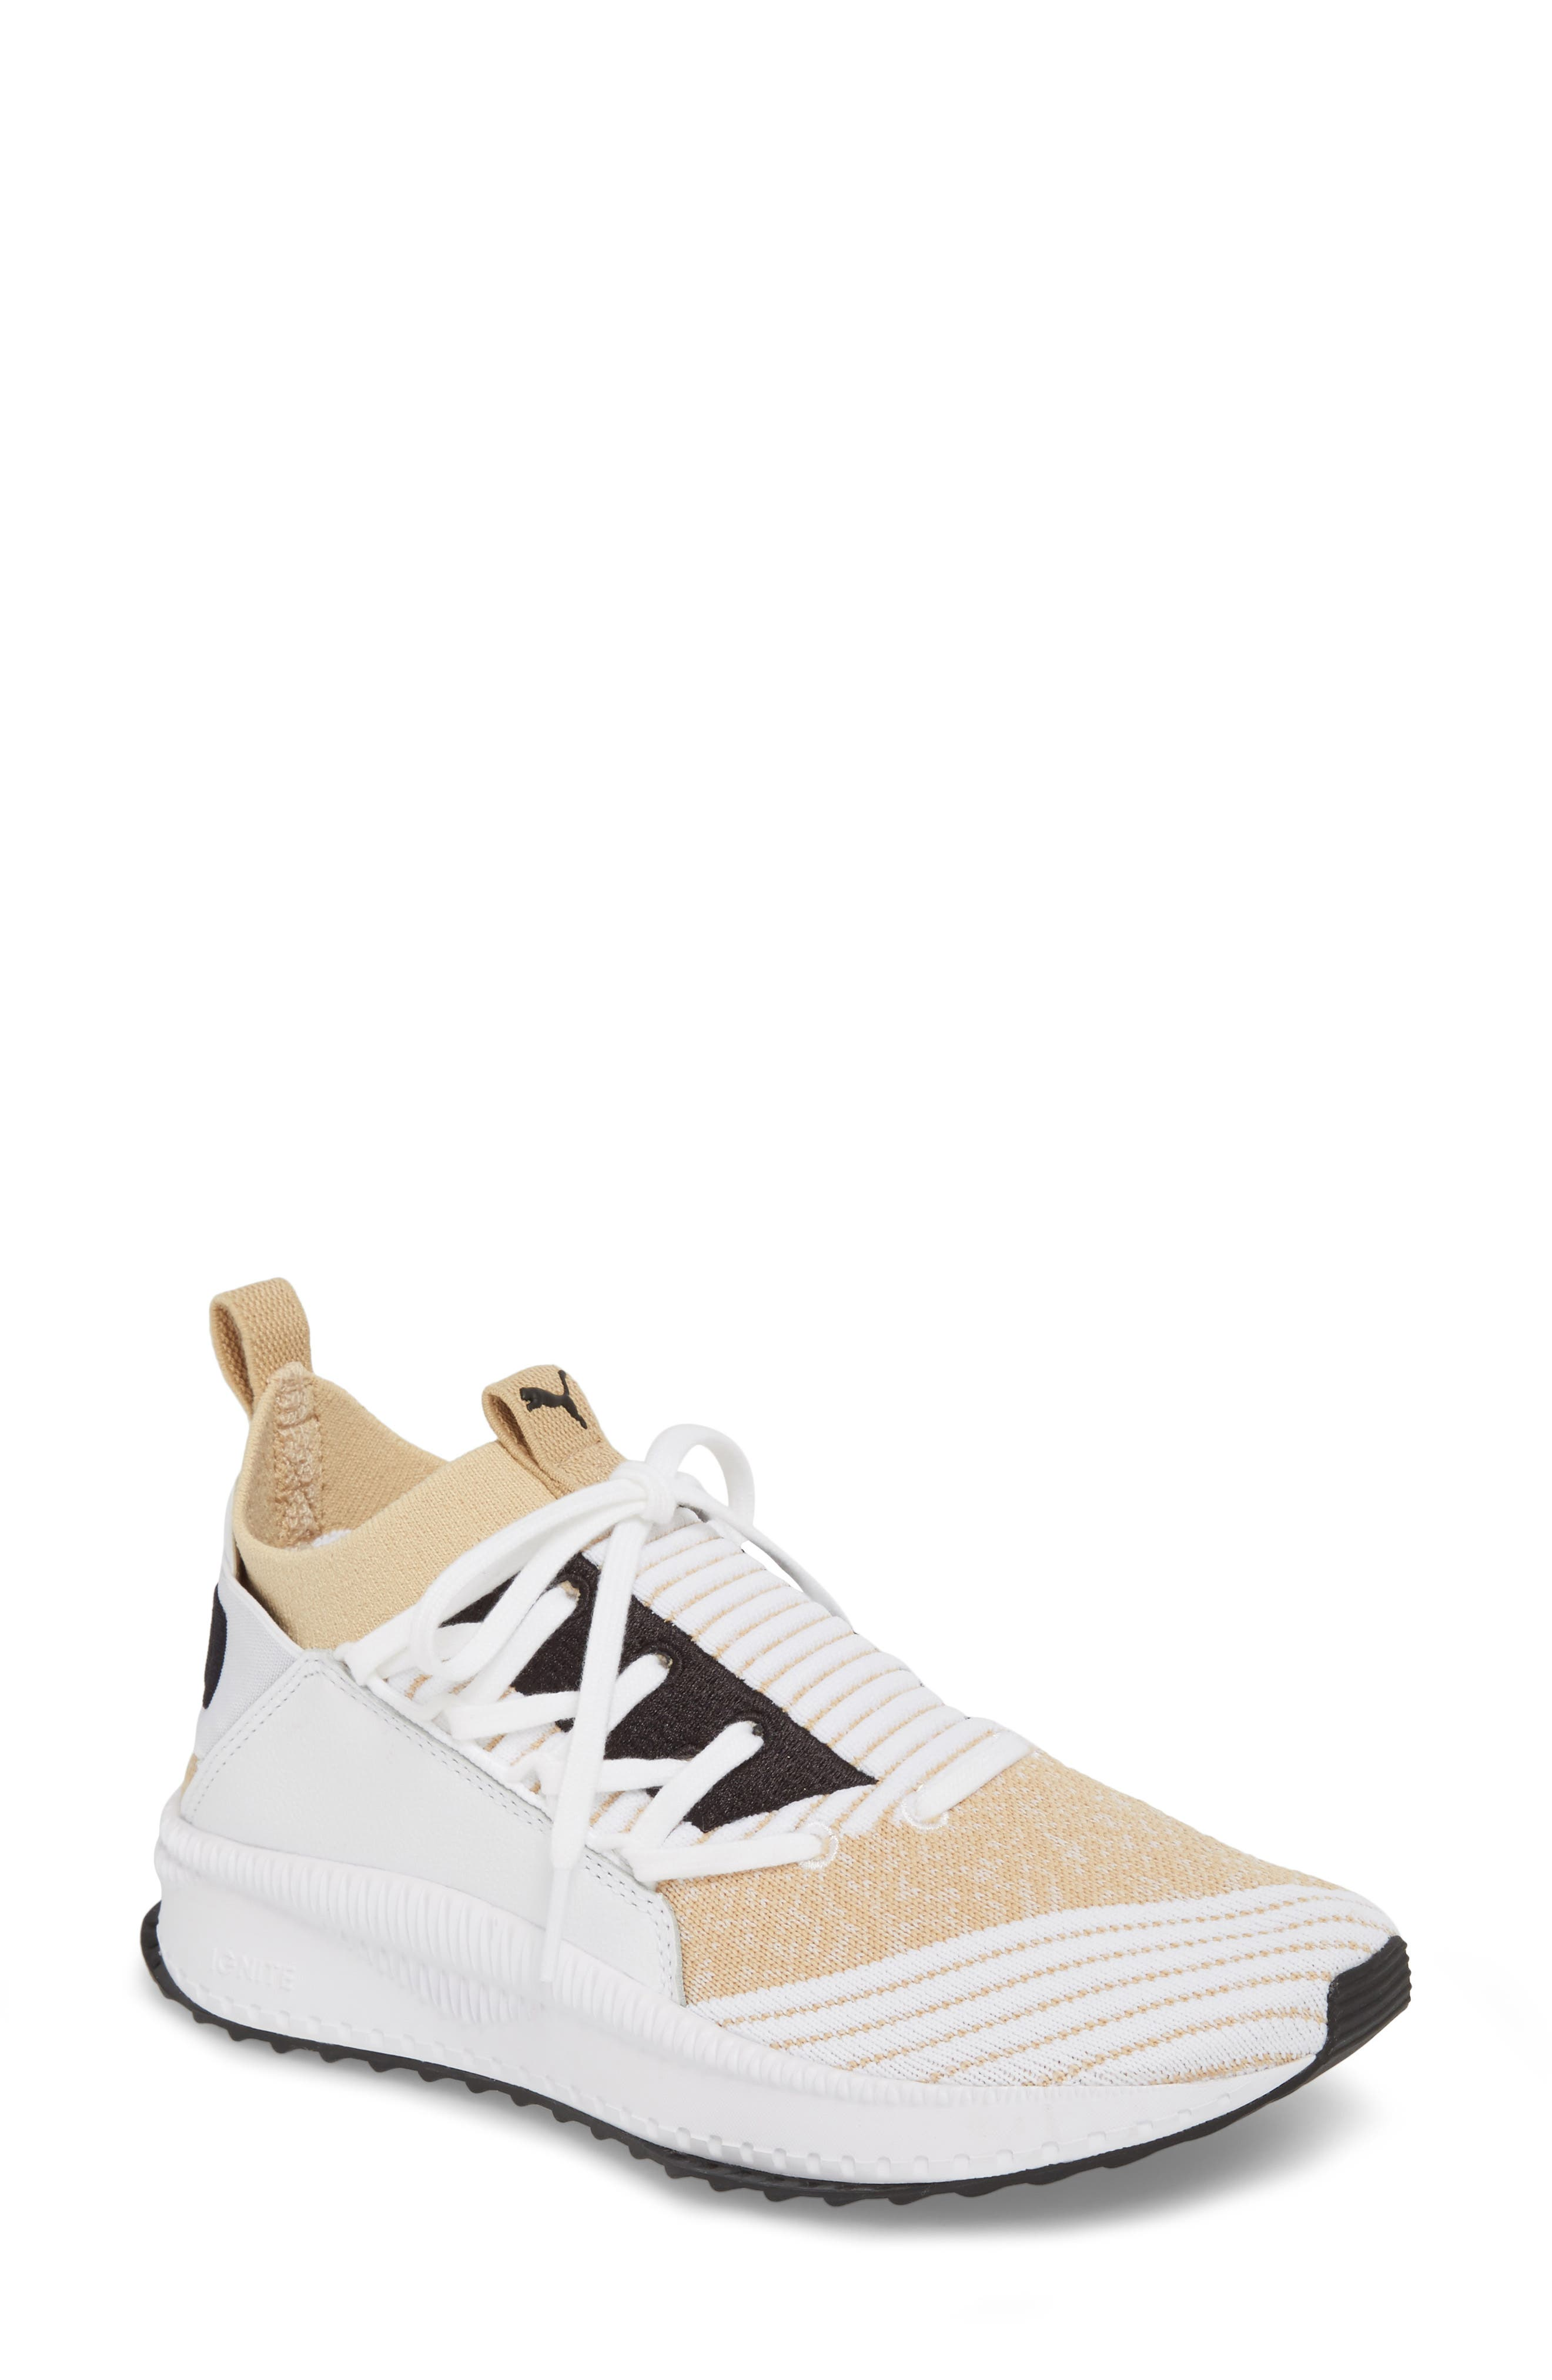 PUMA Tsugi Jun Knit Sneaker (Women)